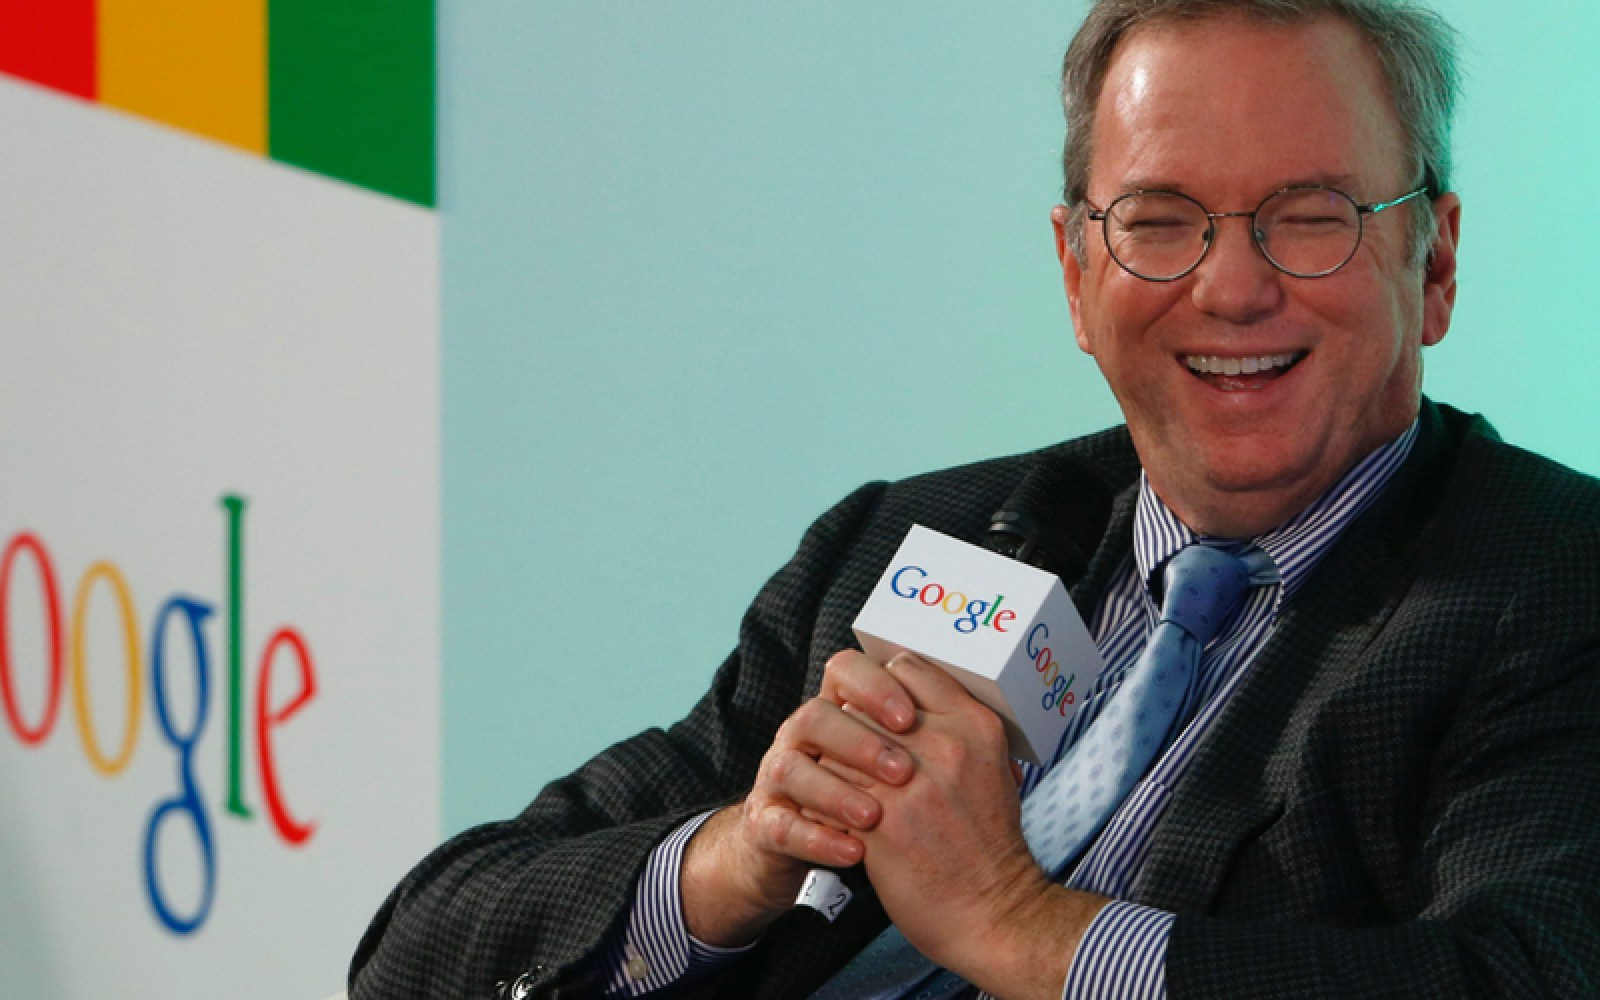 Talking Schmidt: The new Raspberry Pi is just $5 because of the Alphabet Inc. chairman